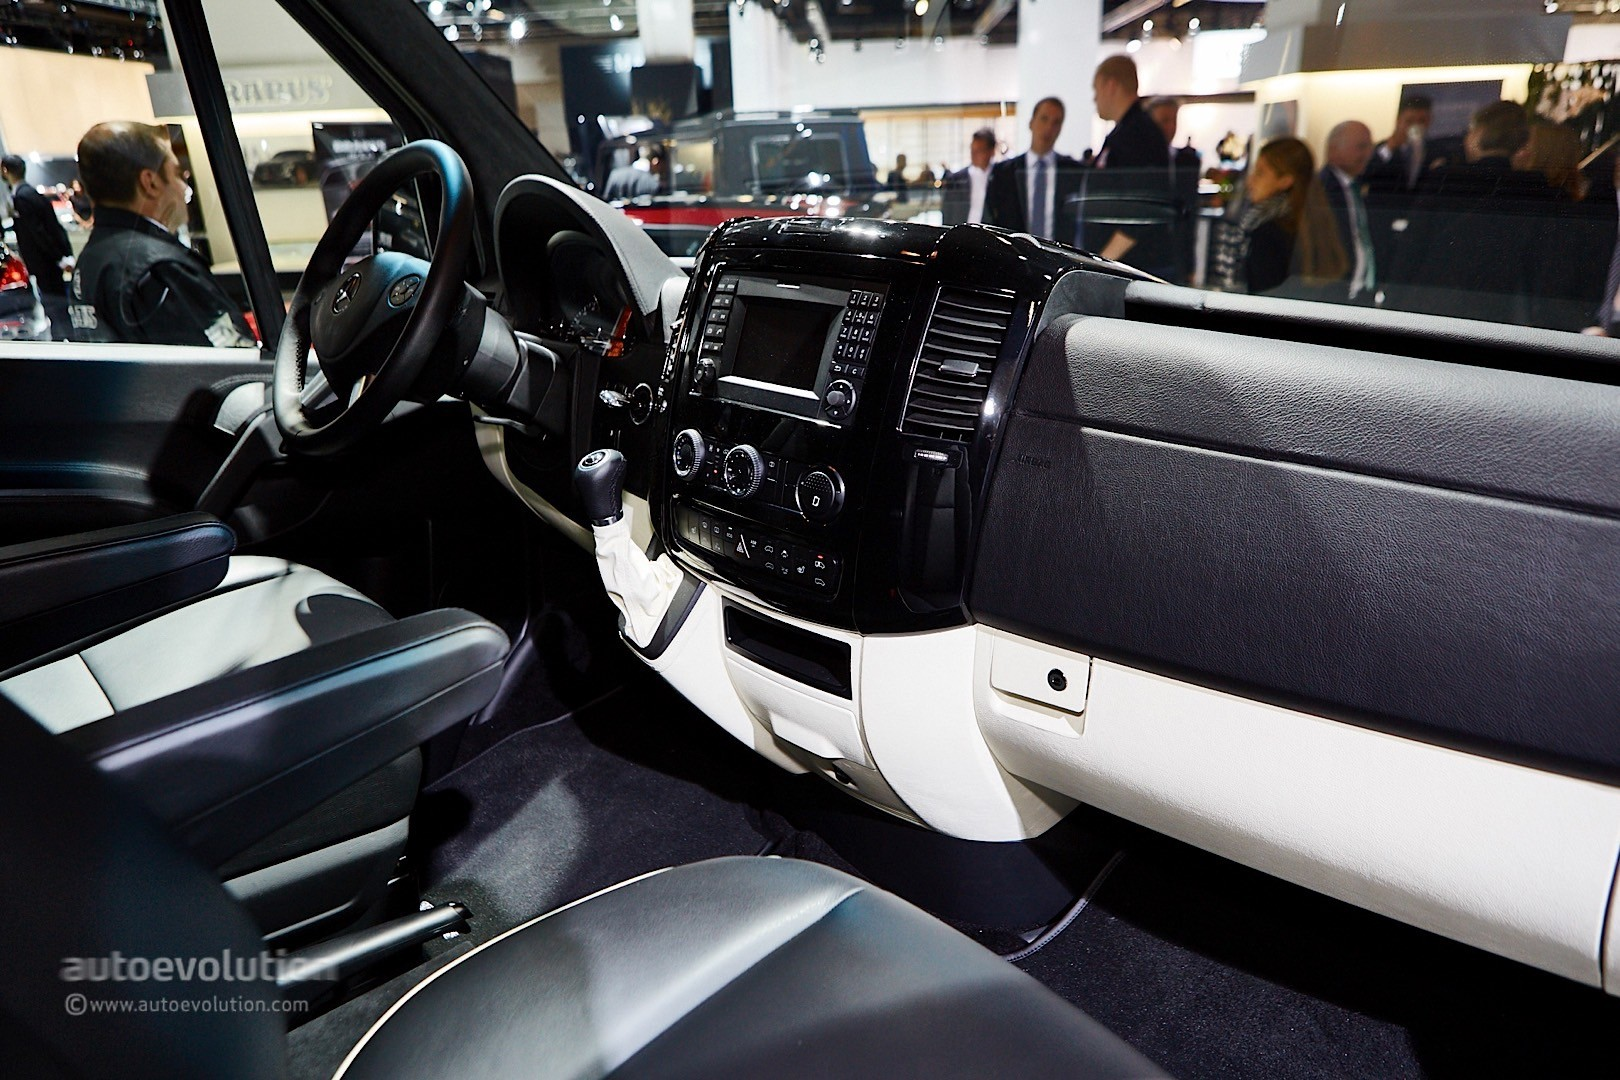 ' ' from the web at 'http://s1.cdn.autoevolution.com/images/news/gallery/brabus-sprinter-and-v-class-fill-the-luxury-van-gap-in-frankfurt-live-photos_7.jpg'